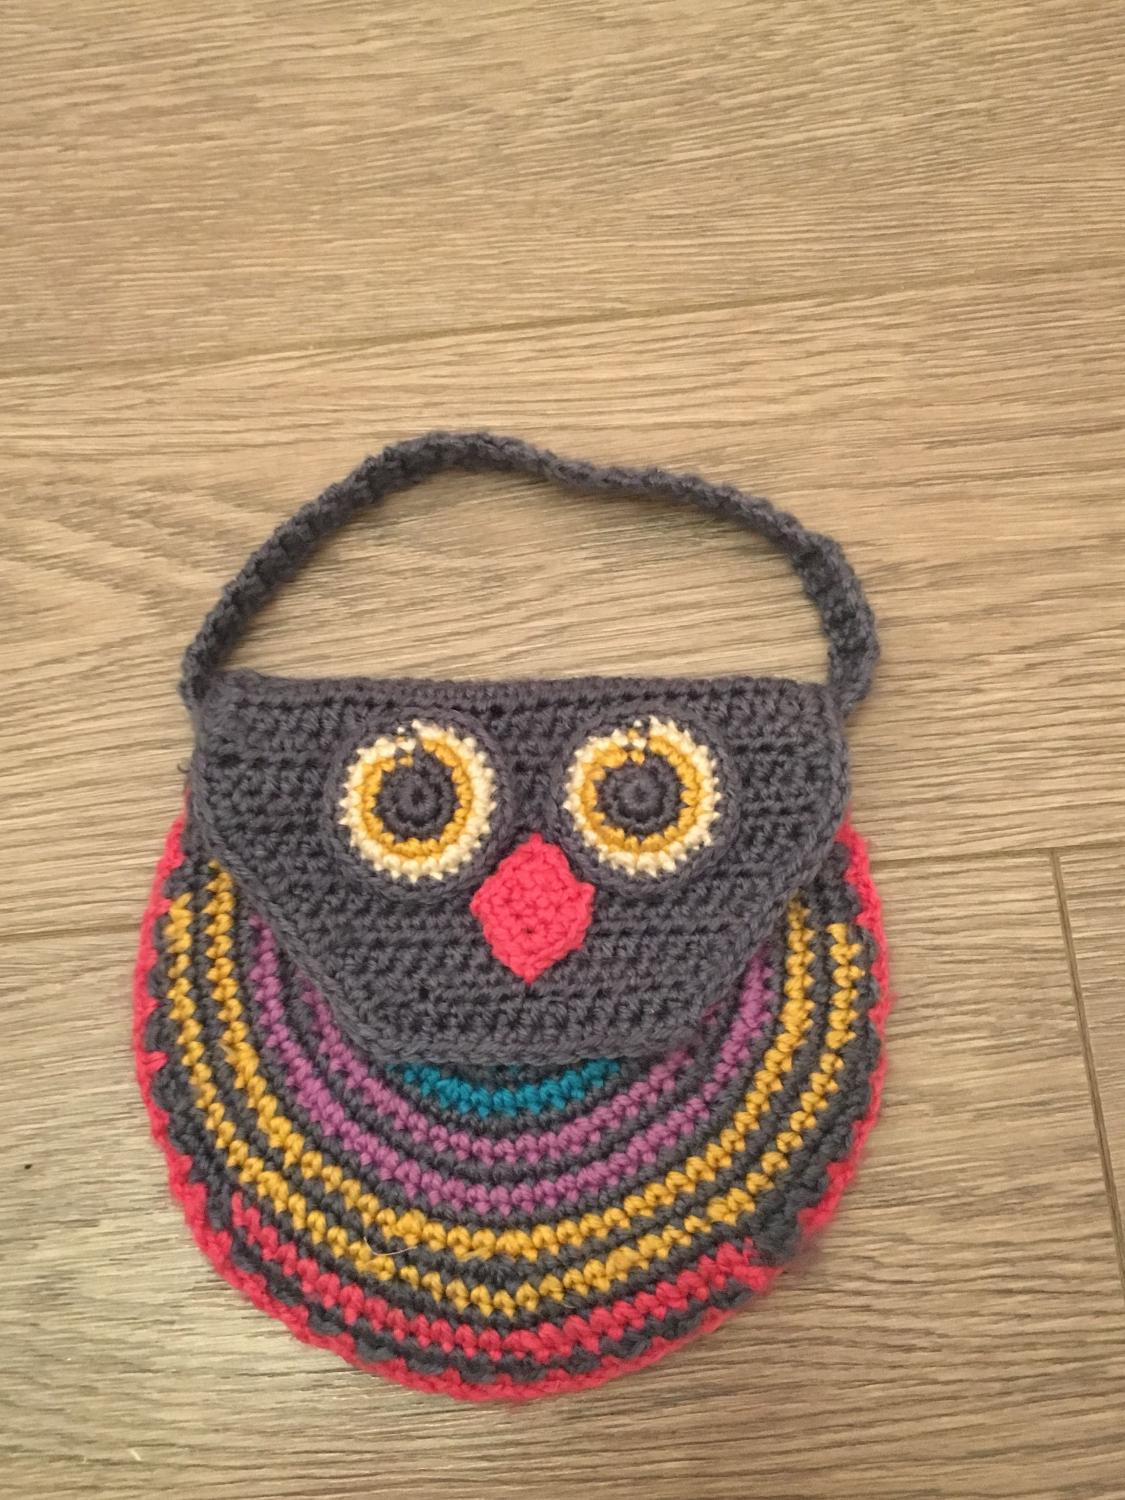 Find More Little Girls Crocheted Owl Purse For Sale At Up To 90 Off